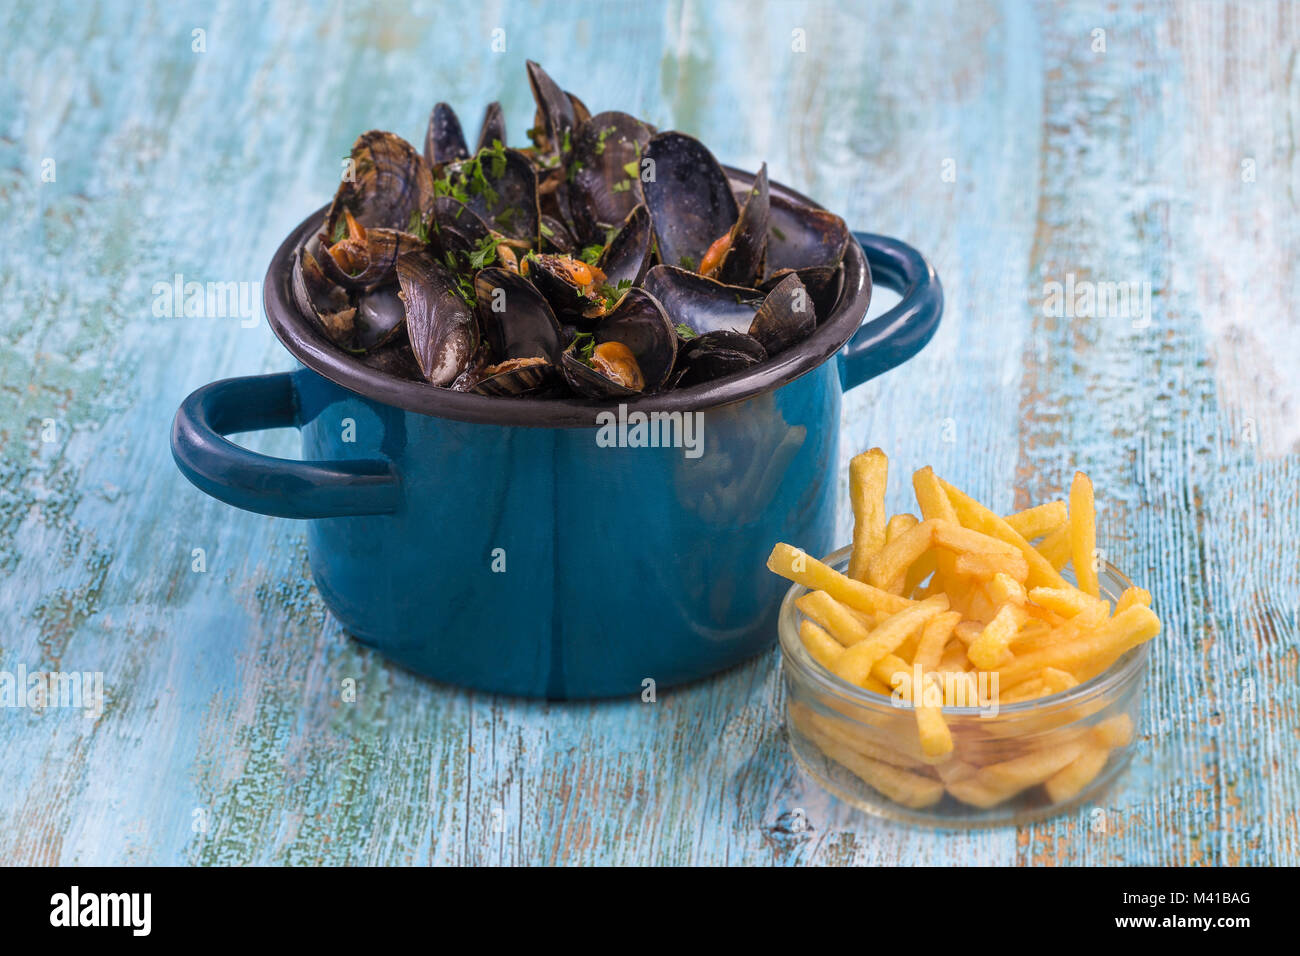 mussels in a blue ceramic pot on a blue wooden background. with a glass bowl of french fries. Brlgium lifestyle. - Stock Image